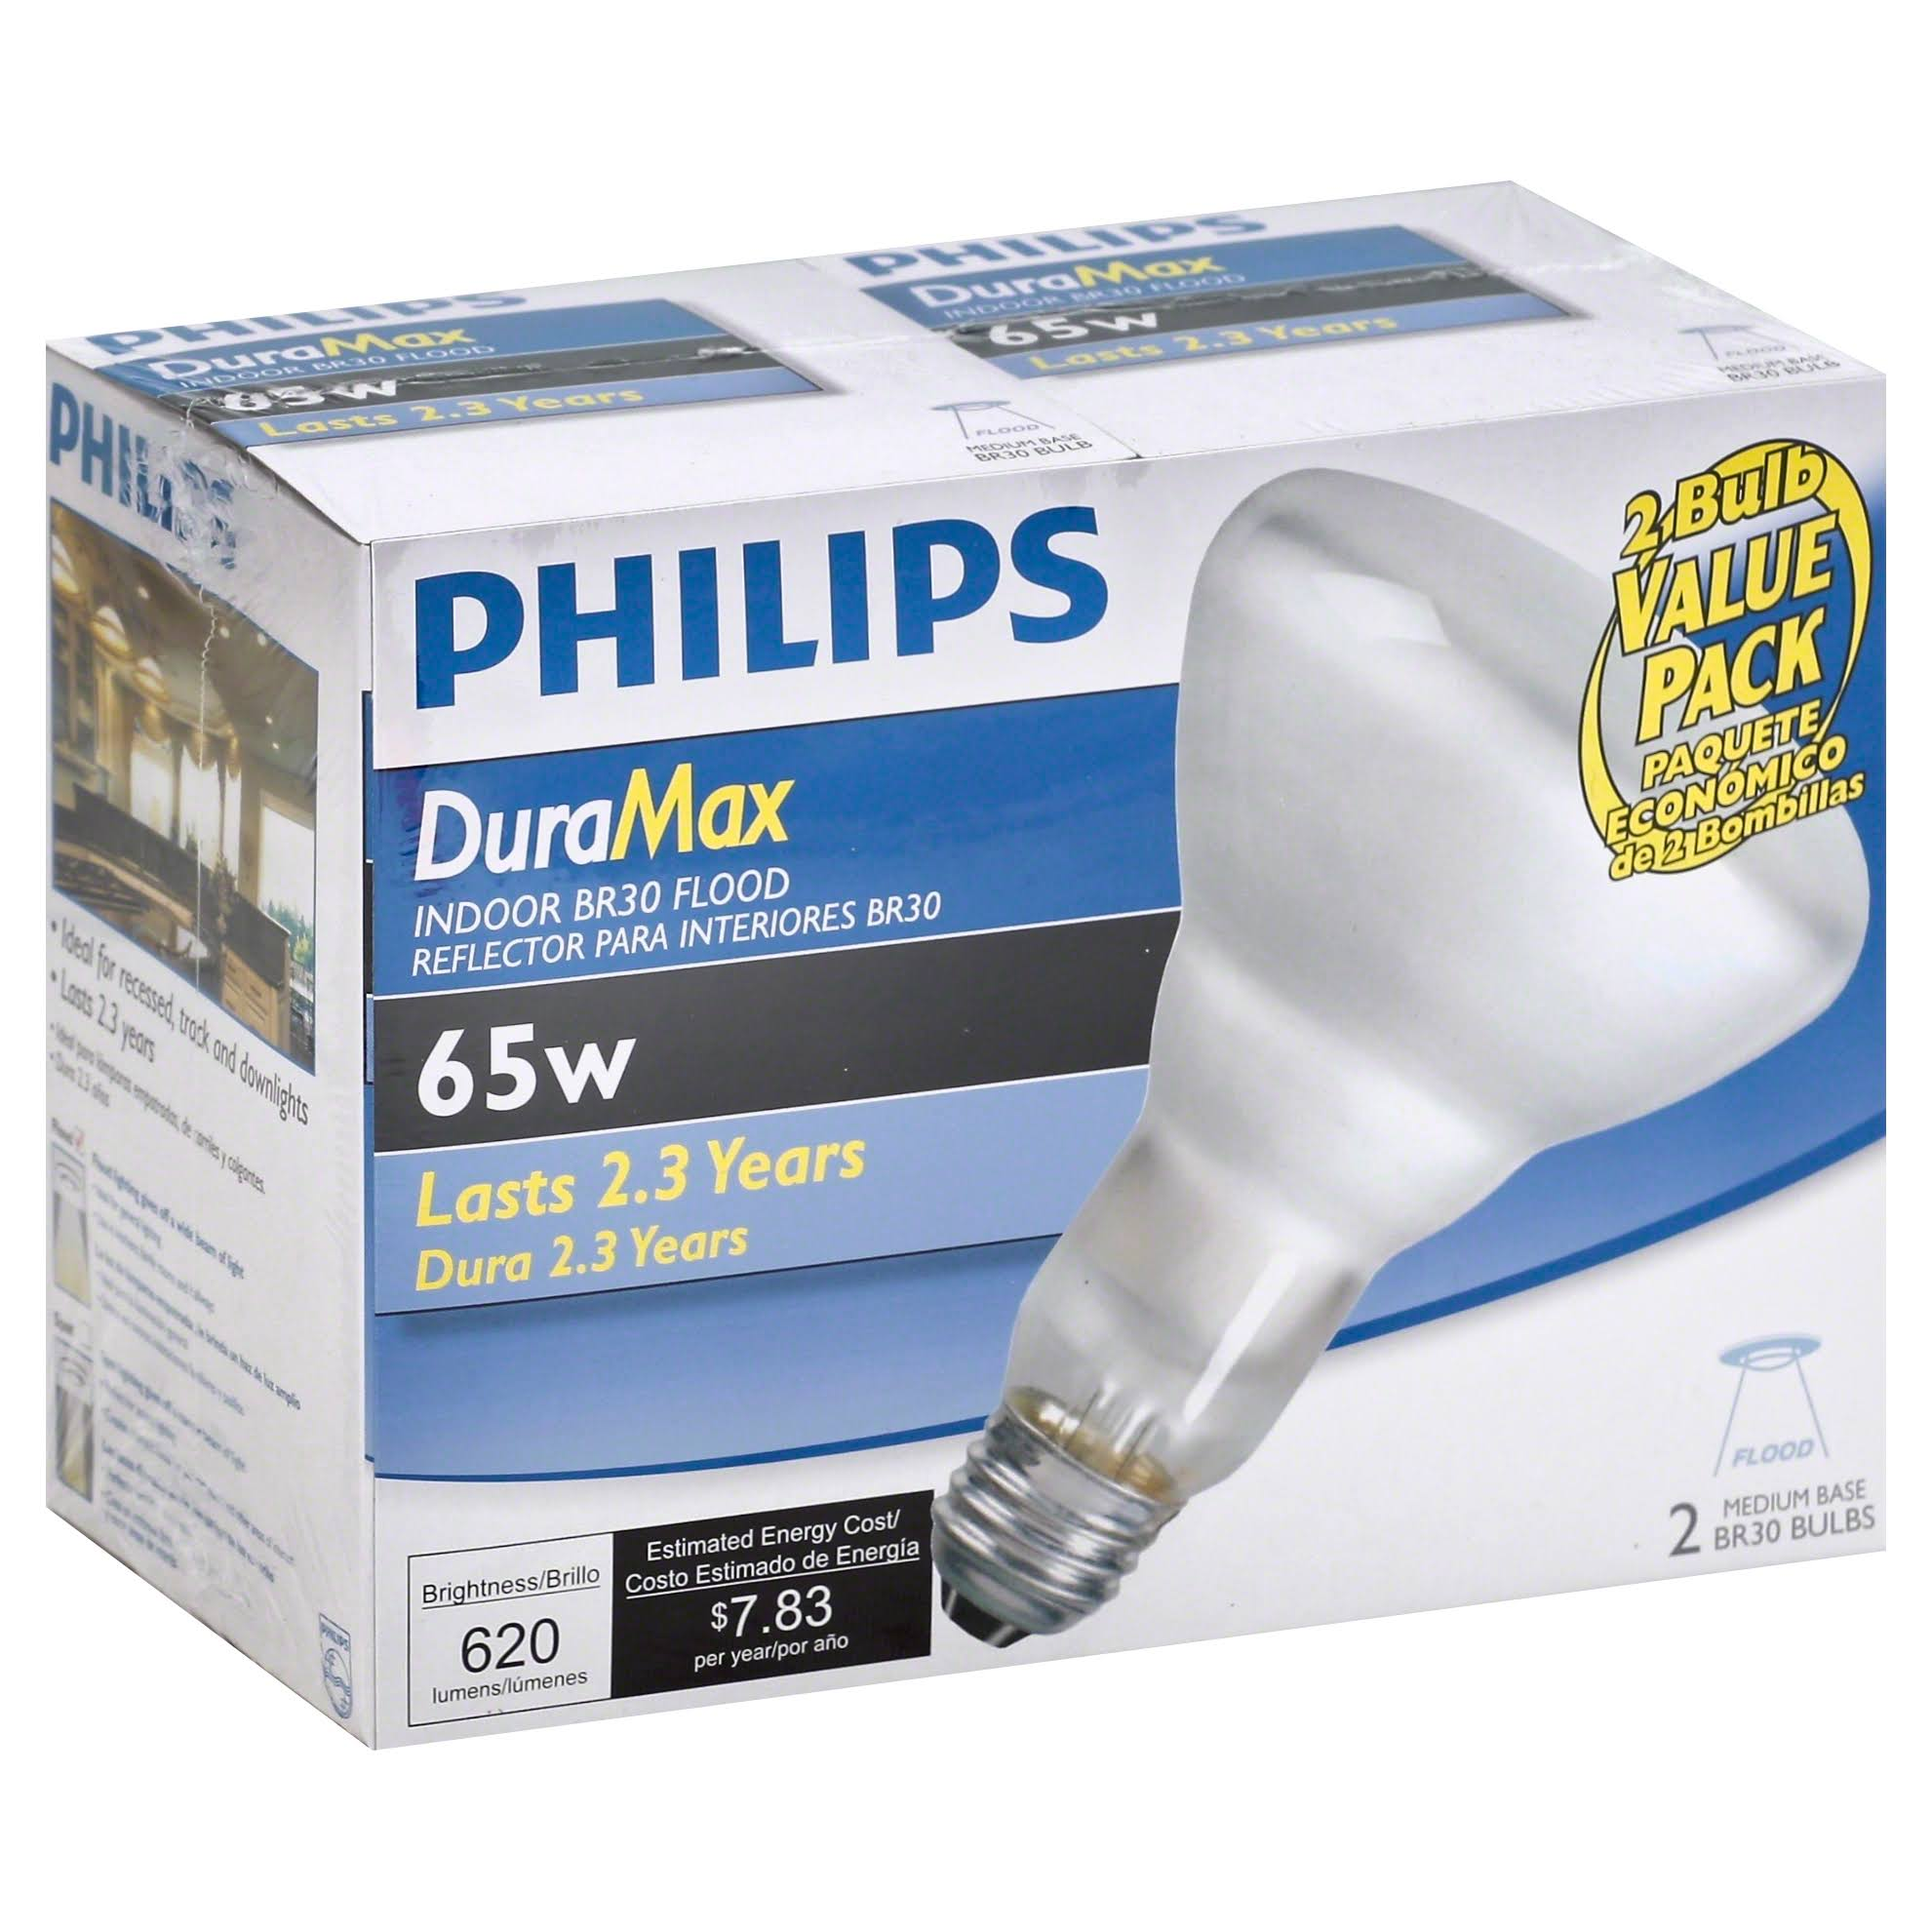 Philips Duramax Long Life Indoor Flood Light Bulbs - 65W, 2pk